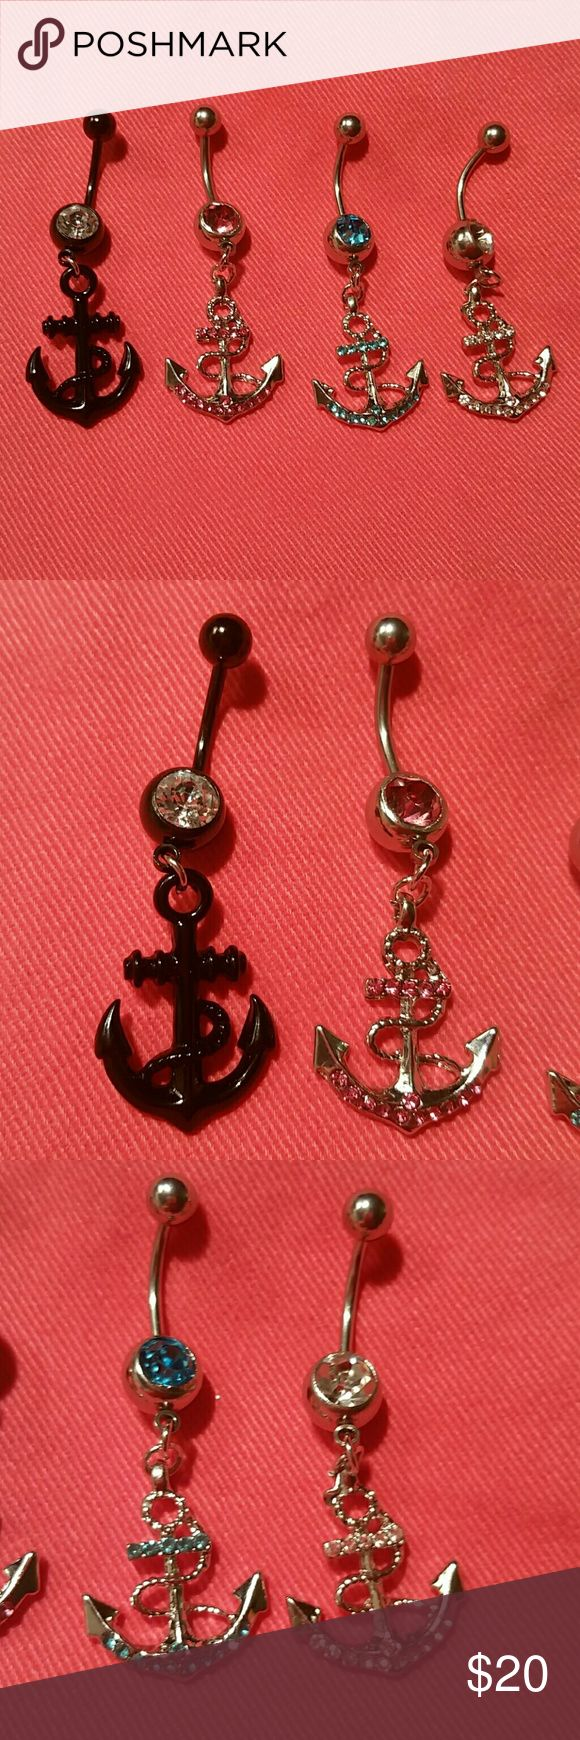 """4 NEW Anchor Dangle Crystal Navel Ring Lot Bundle of 4 BRAND NEW, never used (as that is unsanitary, even when well cleaned) curved barbell/banana navel (belly button) body piercing jewelry. Surgical grade stainless steel, standard 14g 7/16"""" bar length, with sparkling crystal rhinestones in bottom ball.   LOTS more NEW body jewelry in my closet!  Thank you for visiting, happy poshing! :)  SORRY, NO TRADES  BUNDLE & SAVE! Jewelry"""